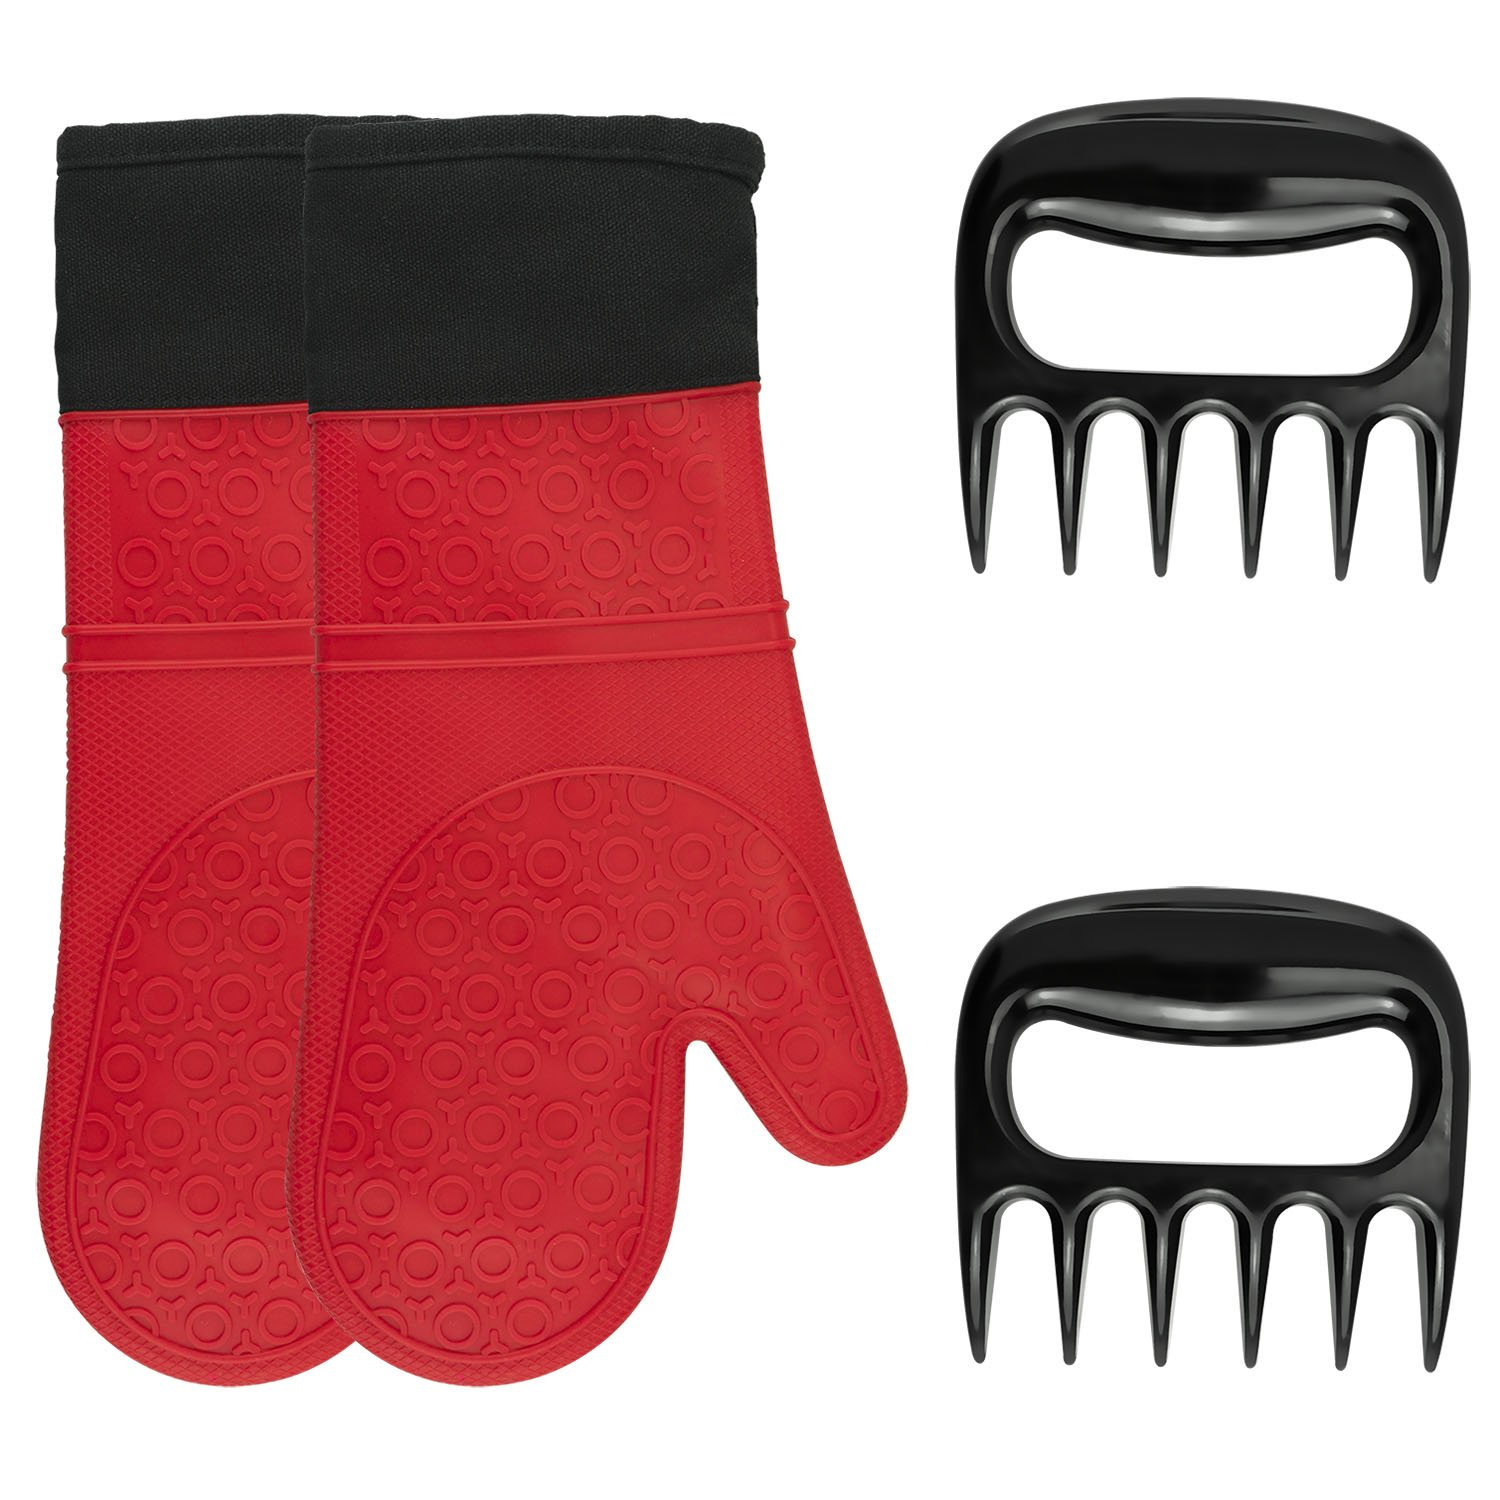 Oven Mitts, BBQ Cooking Tool Set Silicone Extreme Heat Resistant Oven Mitt For Grilling, Baking and Barbecue soogoo